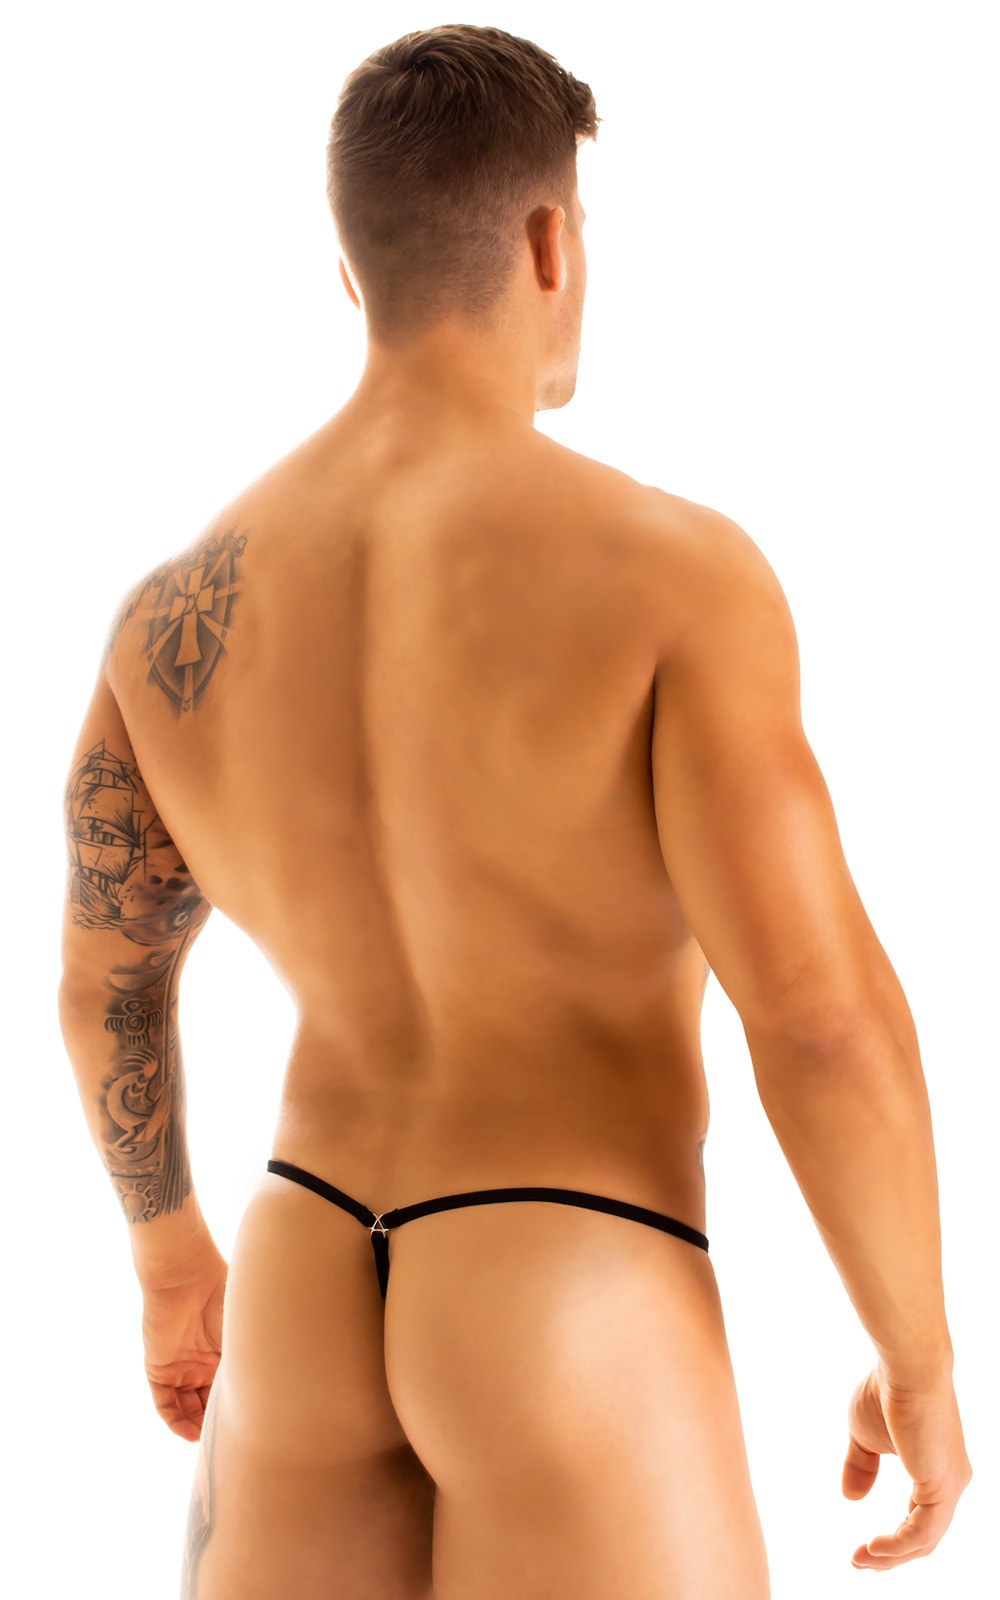 G String Swimsuit - Adjustable Pouch in Super Aquarious Mesh with Black Strings  2